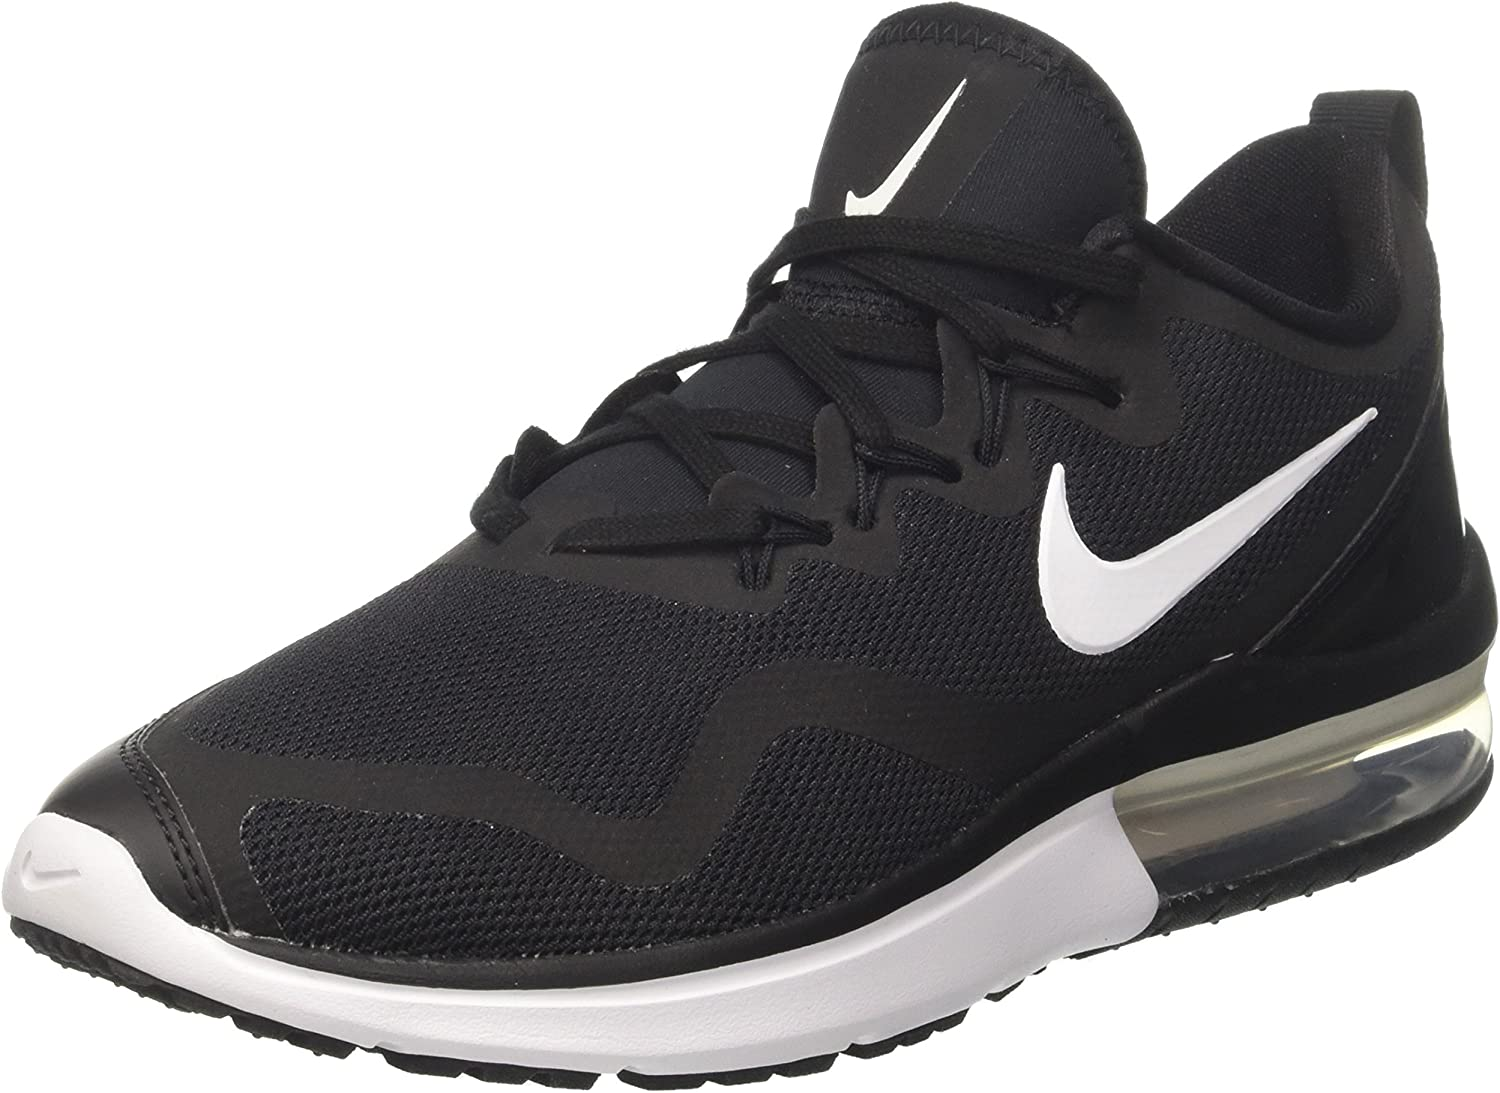 Nike Air Max Fury Womens Running Trainers AA5740 Sneakers Shoes UK 4.5 US 7 EU 38, Black White Black 001